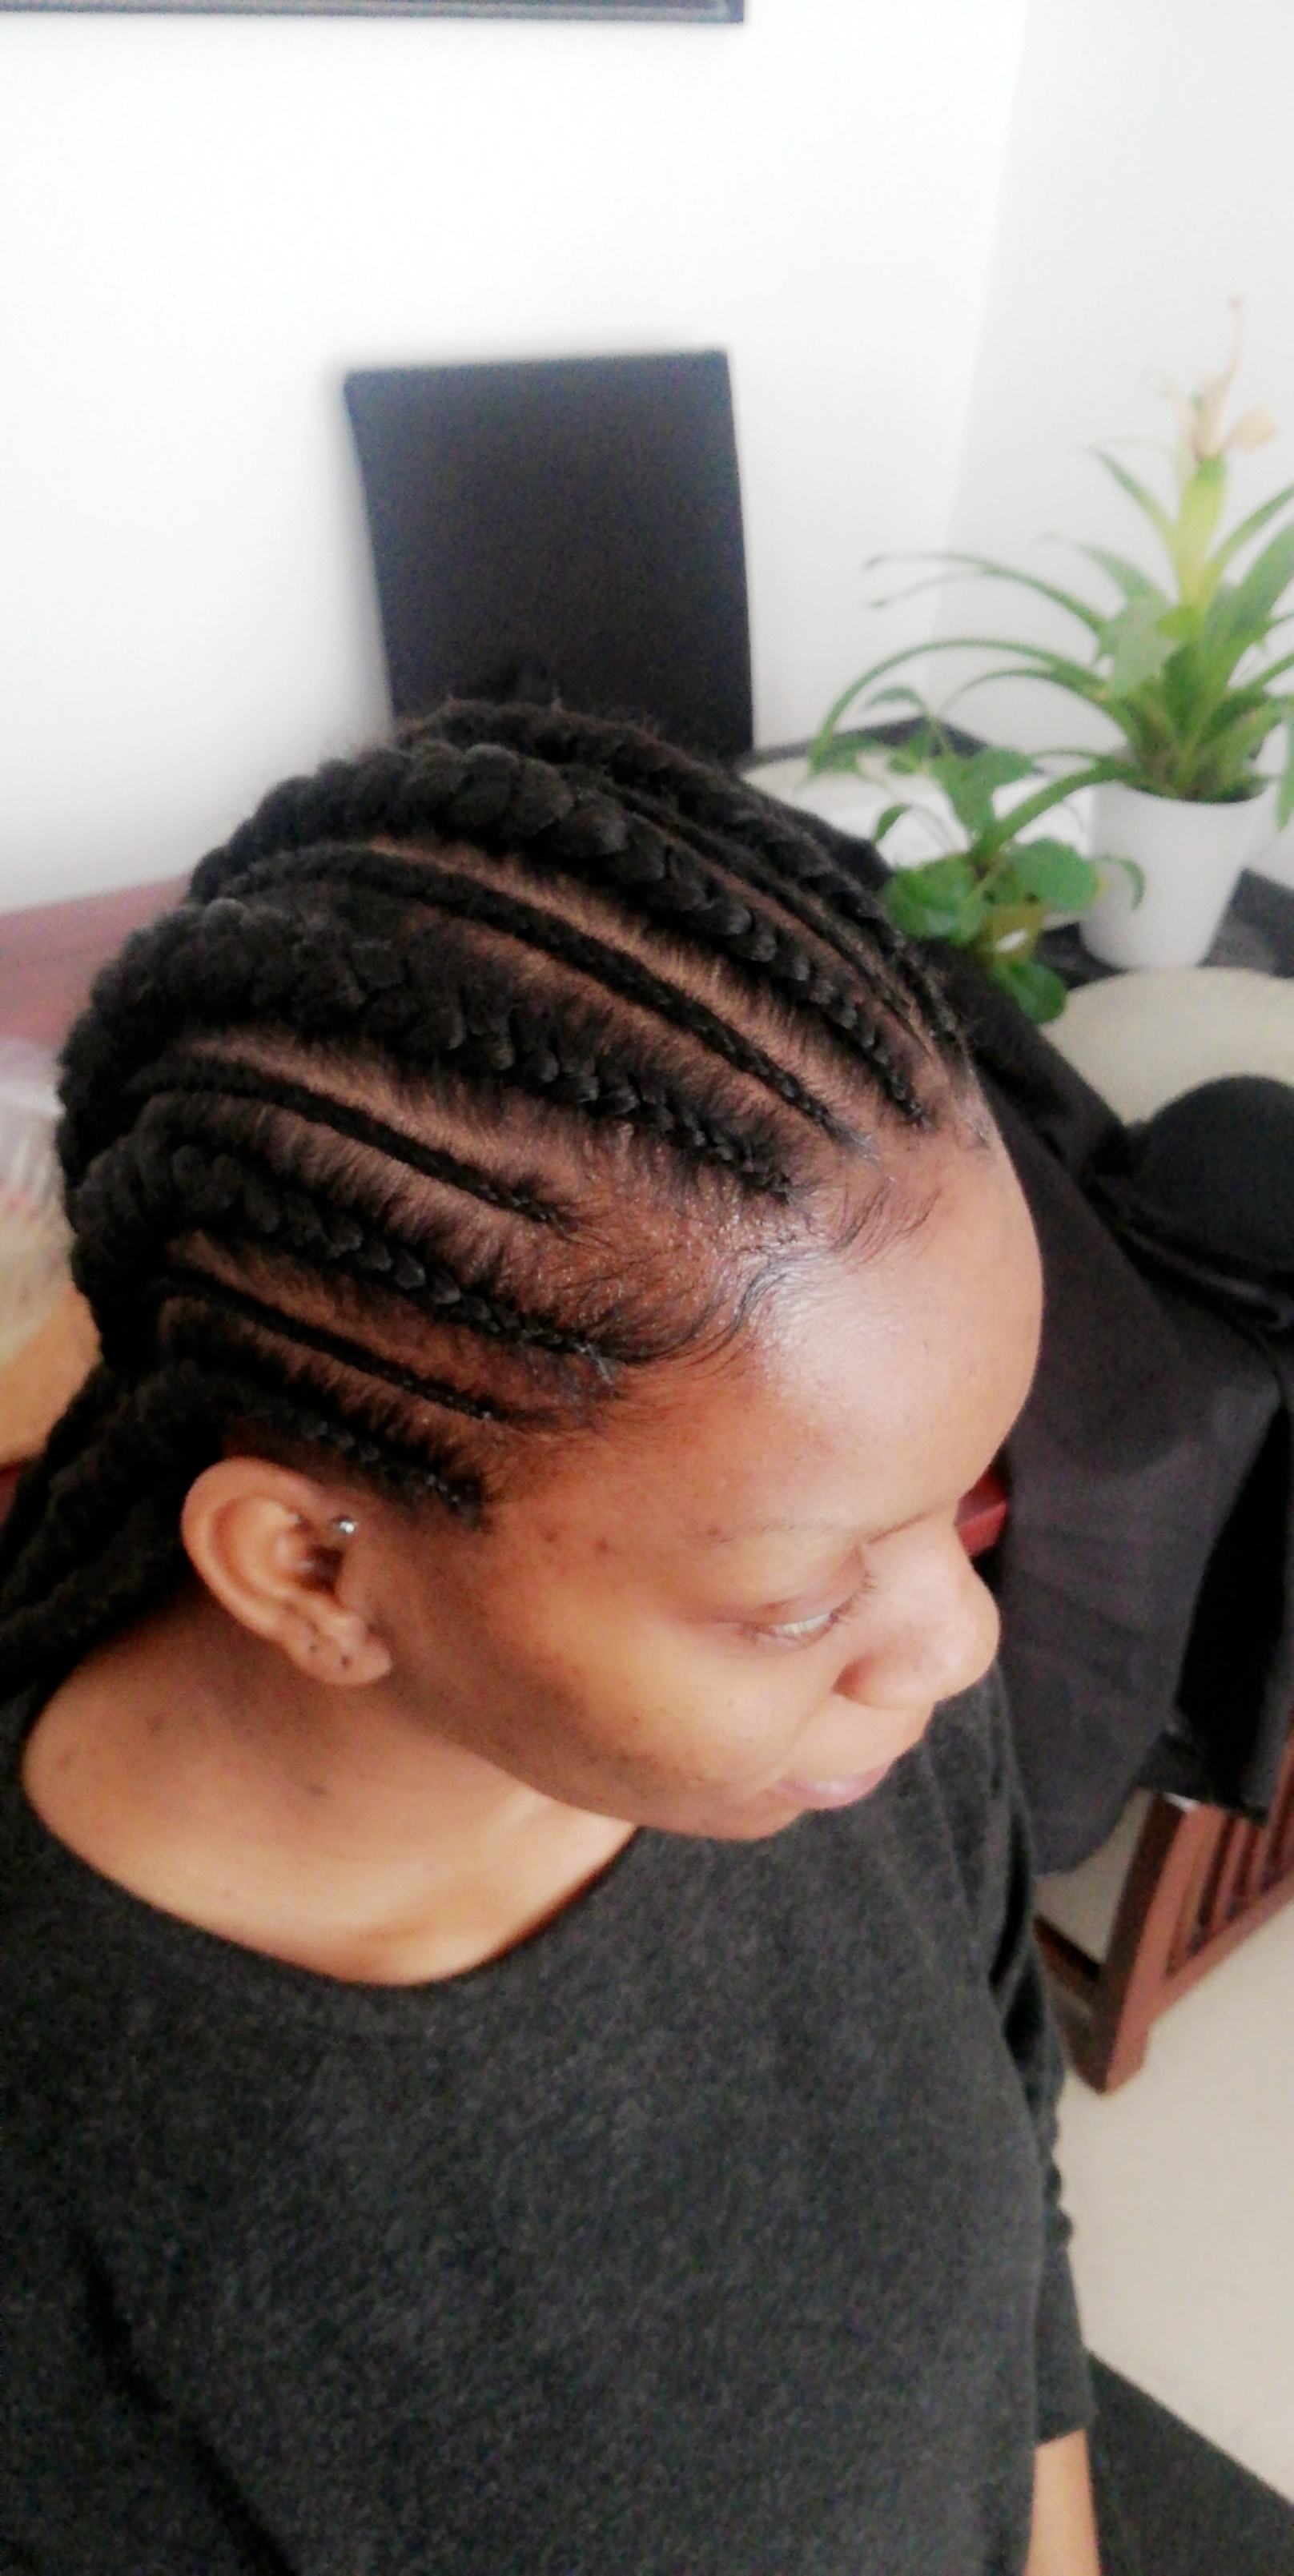 salon de coiffure afro tresse tresses box braids crochet braids vanilles tissages paris 75 77 78 91 92 93 94 95 ZFVWDXOY